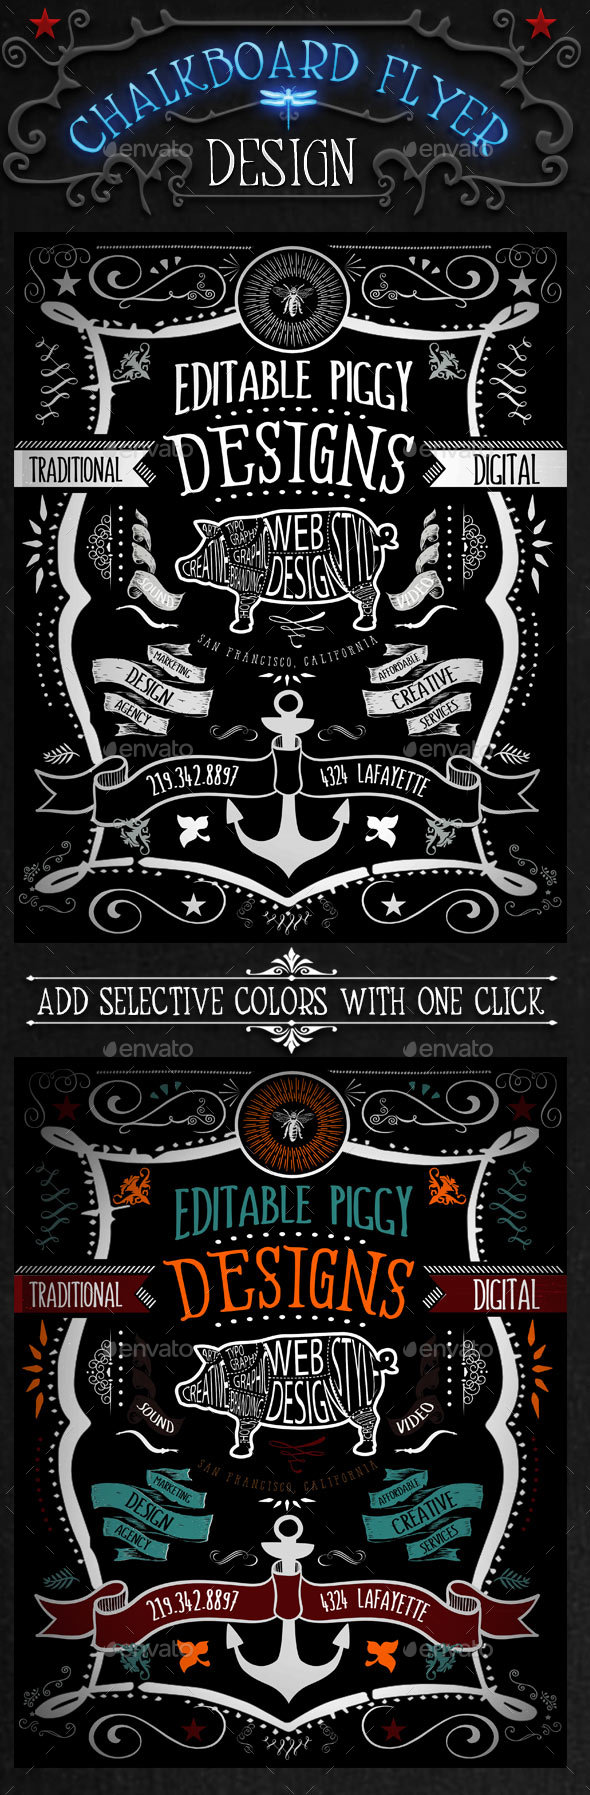 Chalkboard Flyer with OneClick Color - Miscellaneous Events